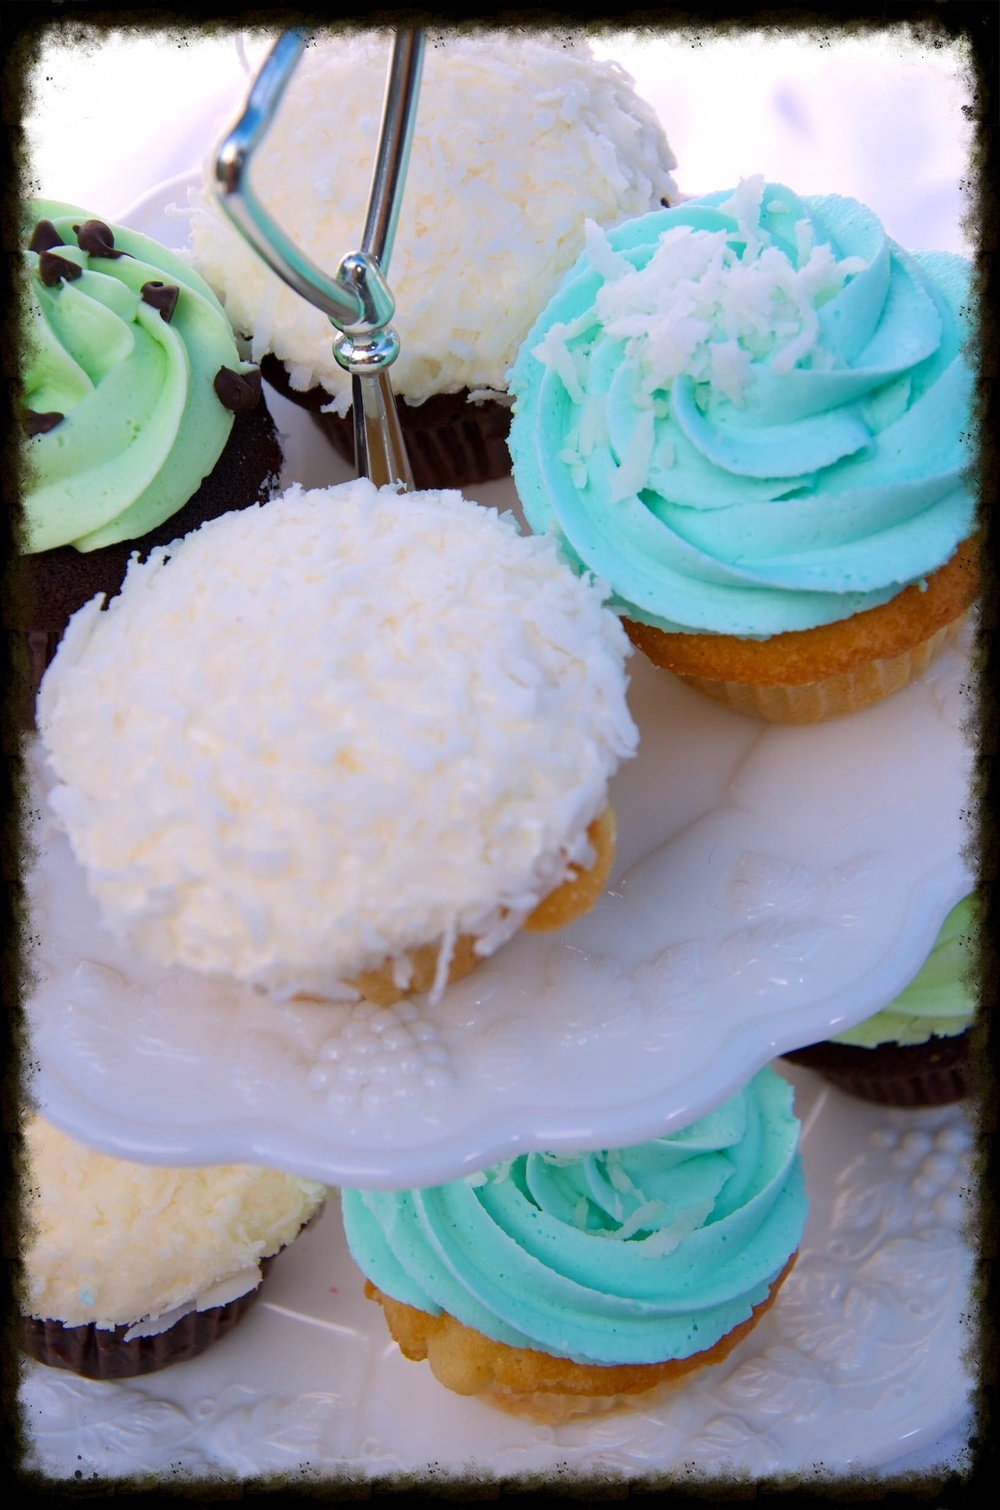 surprise me events cupcakes